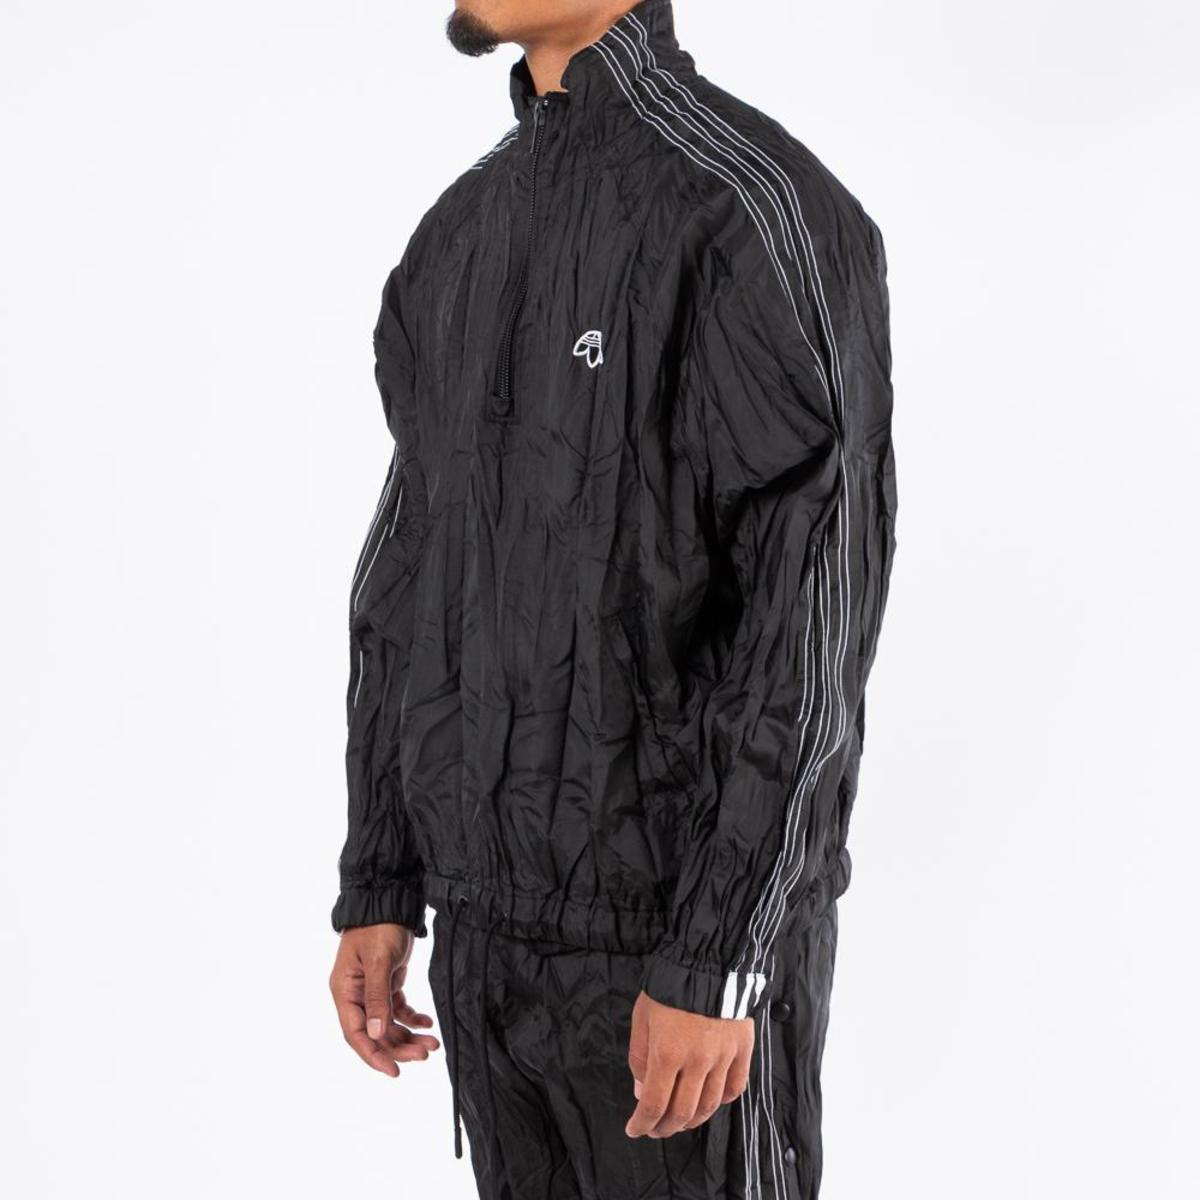 8f867d9dcfc9 adidas Originals by Alexander Wang Windbreaker - Black